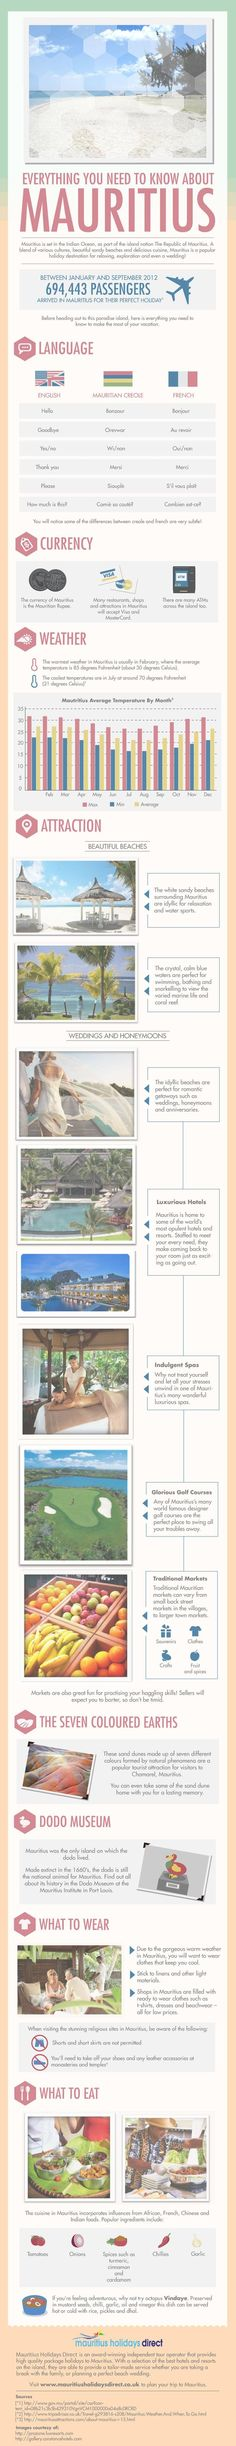 Everything You Need To Know About Mauritius [Infographic]